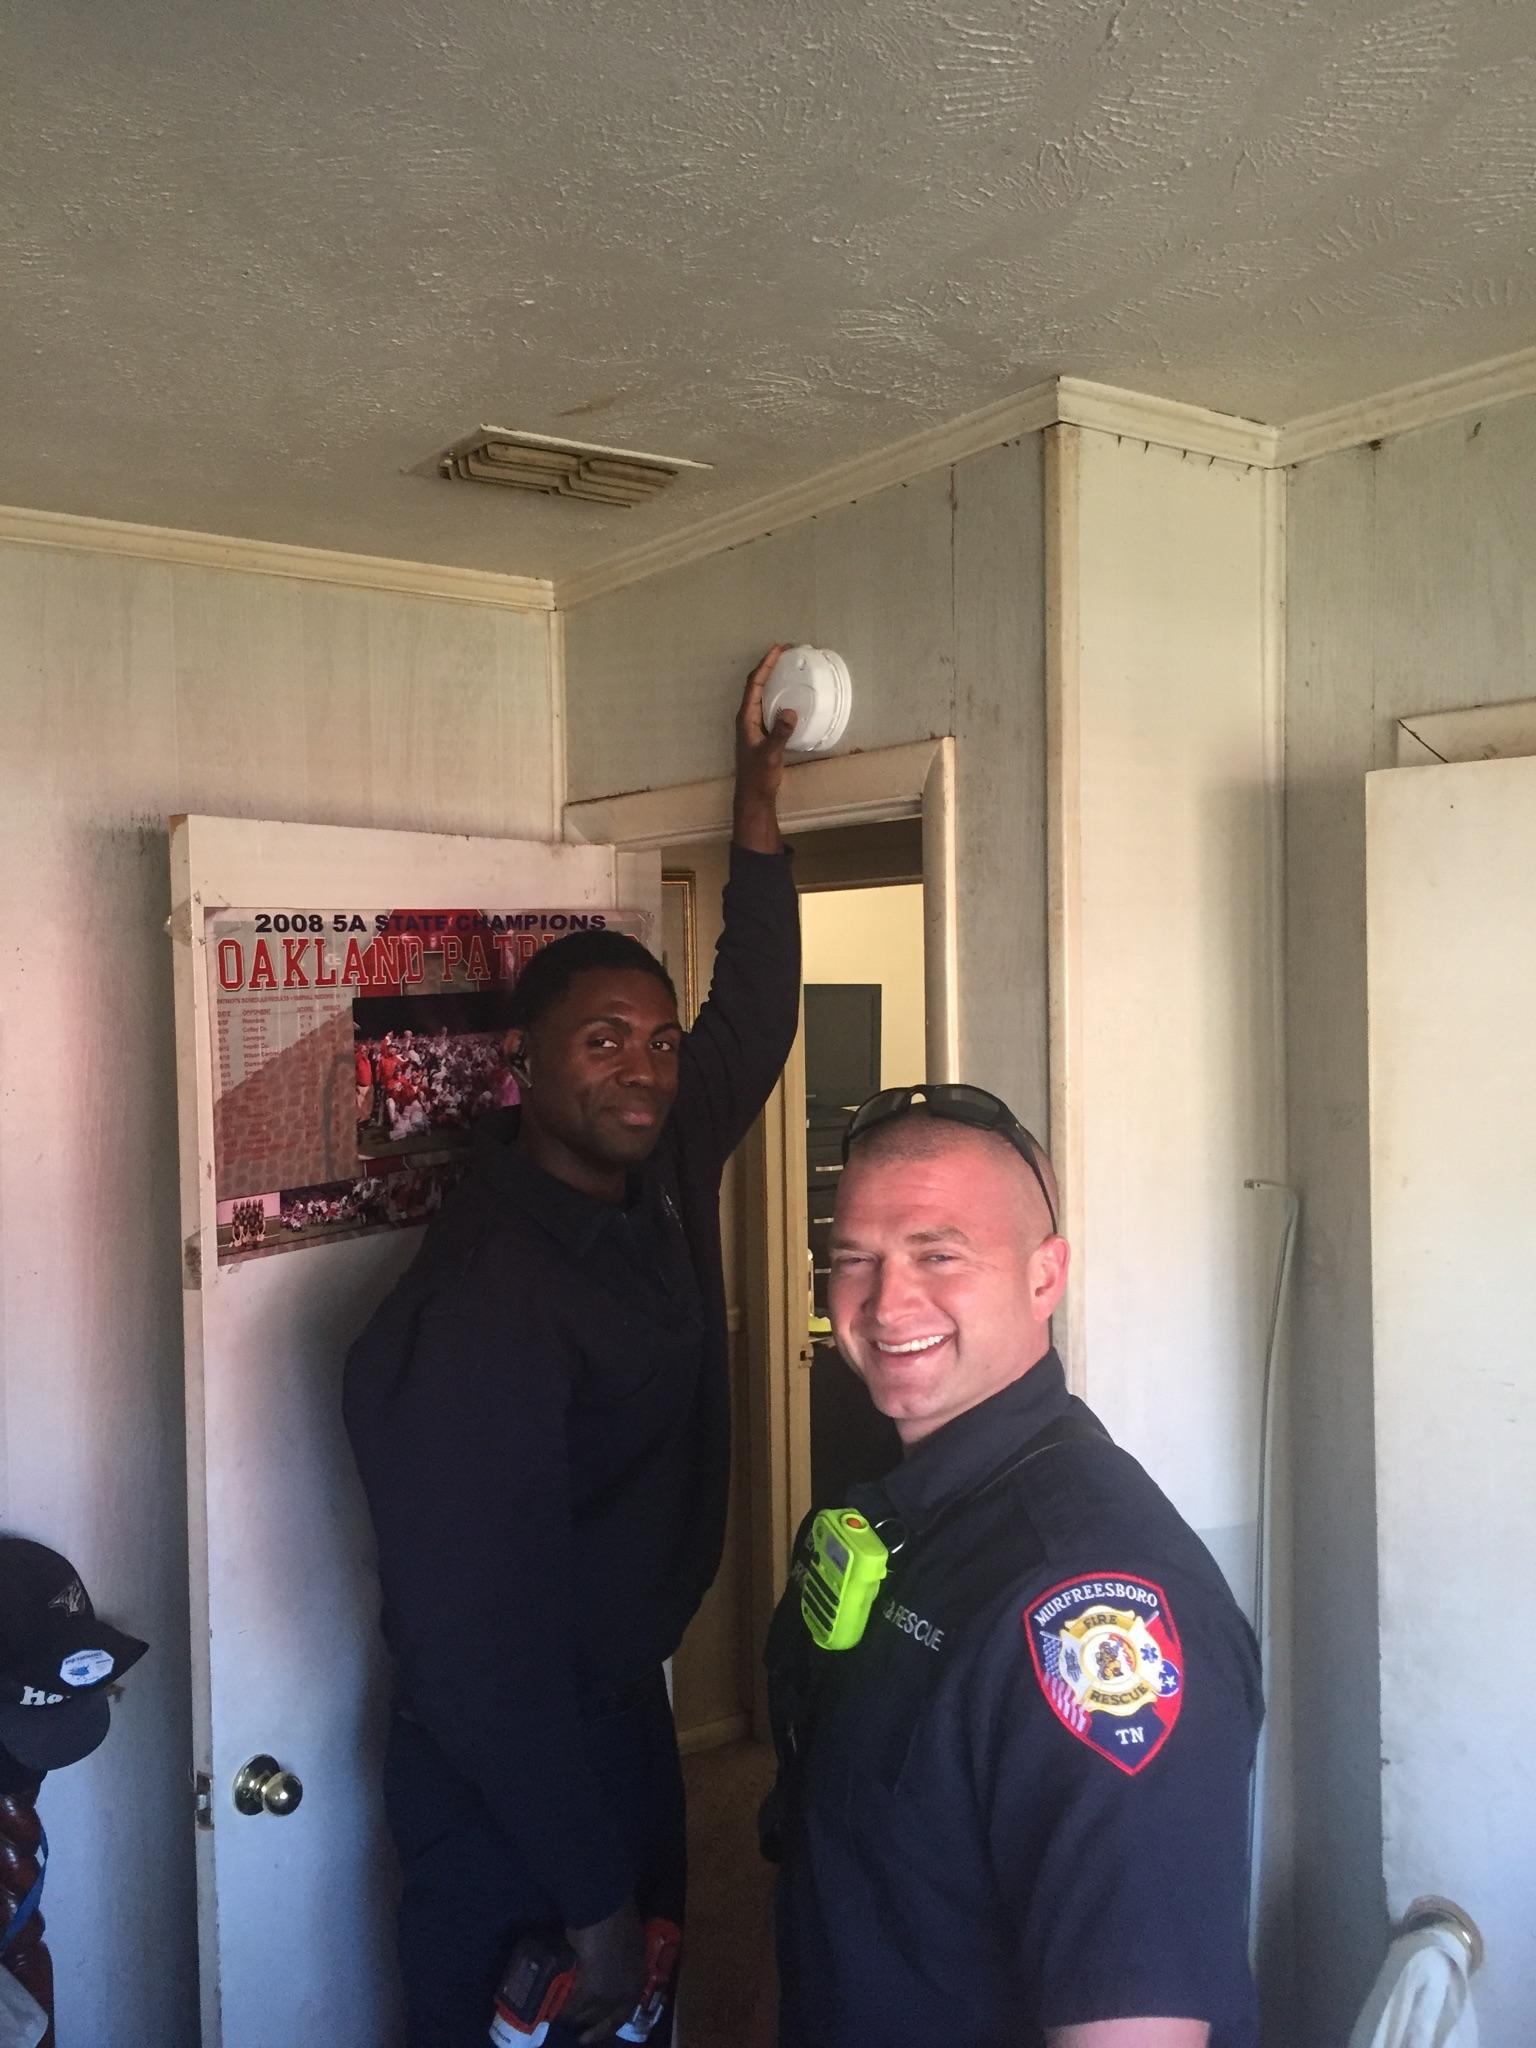 Murfreesboro Fire and Rescue install OVER 100 smoke alarms for free in Murfreesboro